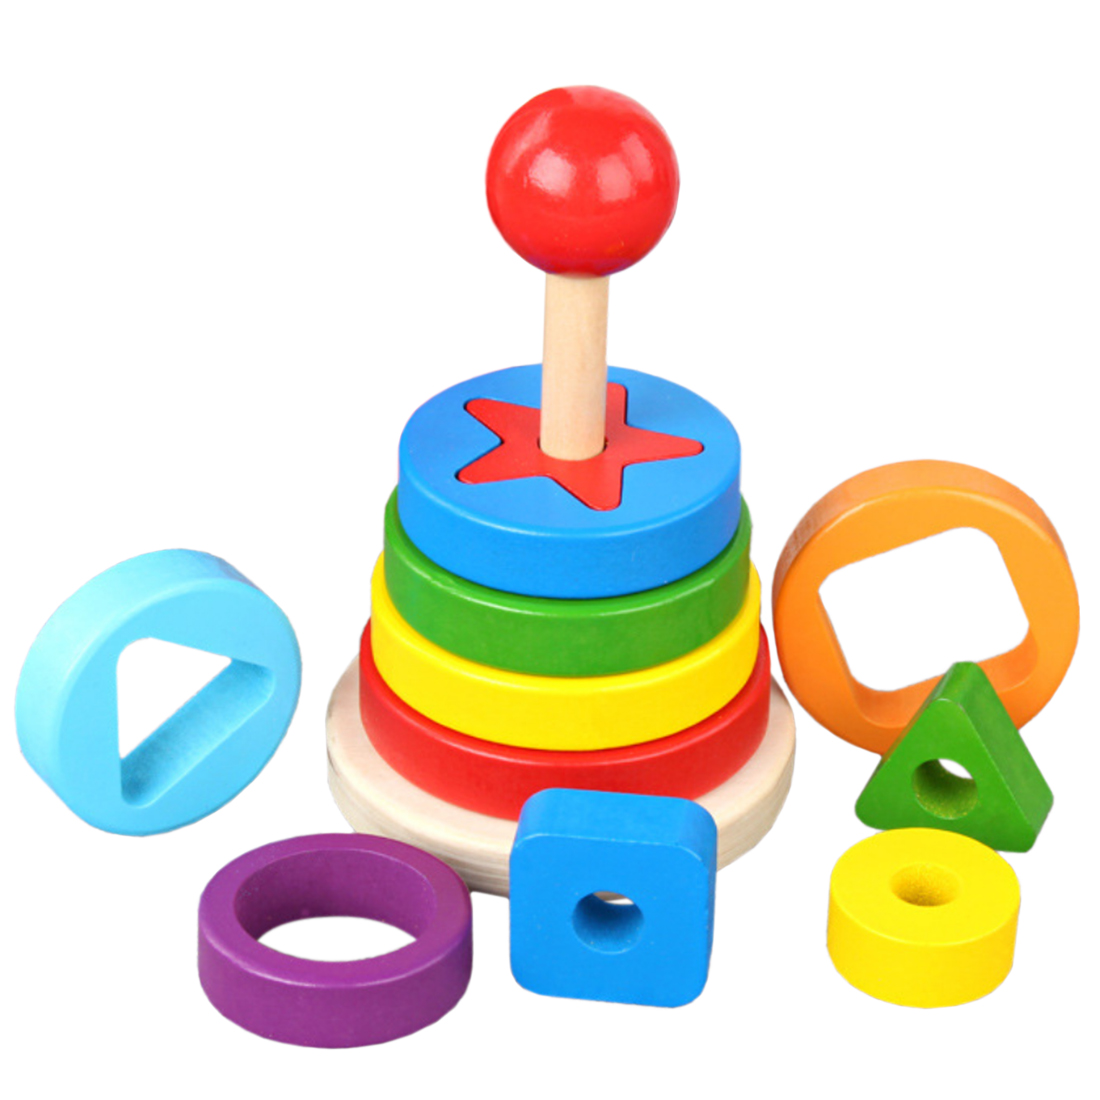 Wooden Irregular Shape Matching Stacking Tower Color And Shape Cognitive Toy For Children Wooden Blocks For Kids Christmas Gift